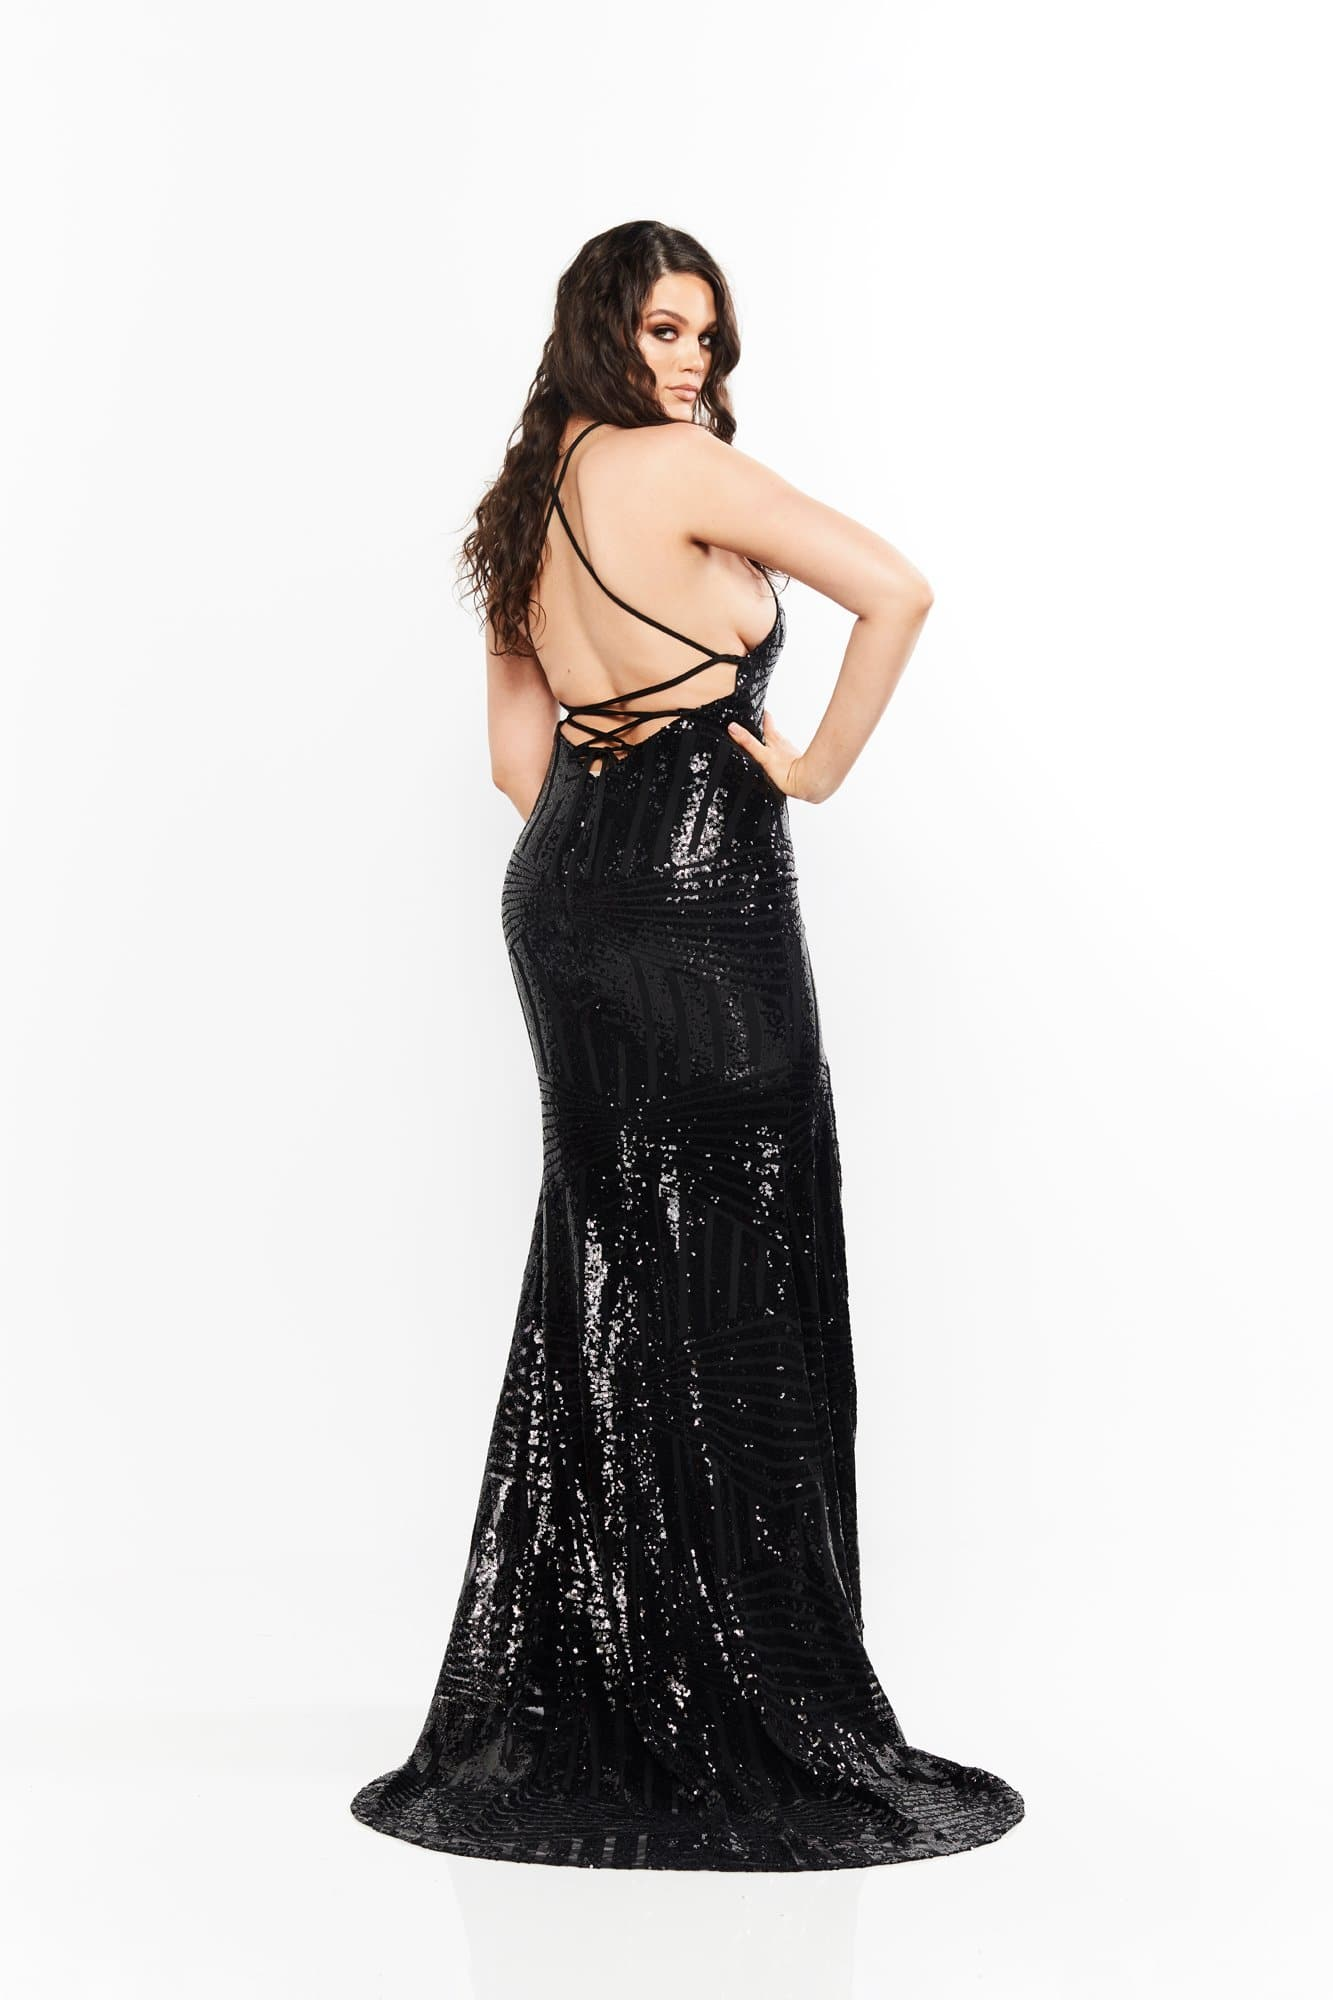 A&N Curve Cosmo- Black Sequins Gown with Lace-Up Back and Slit